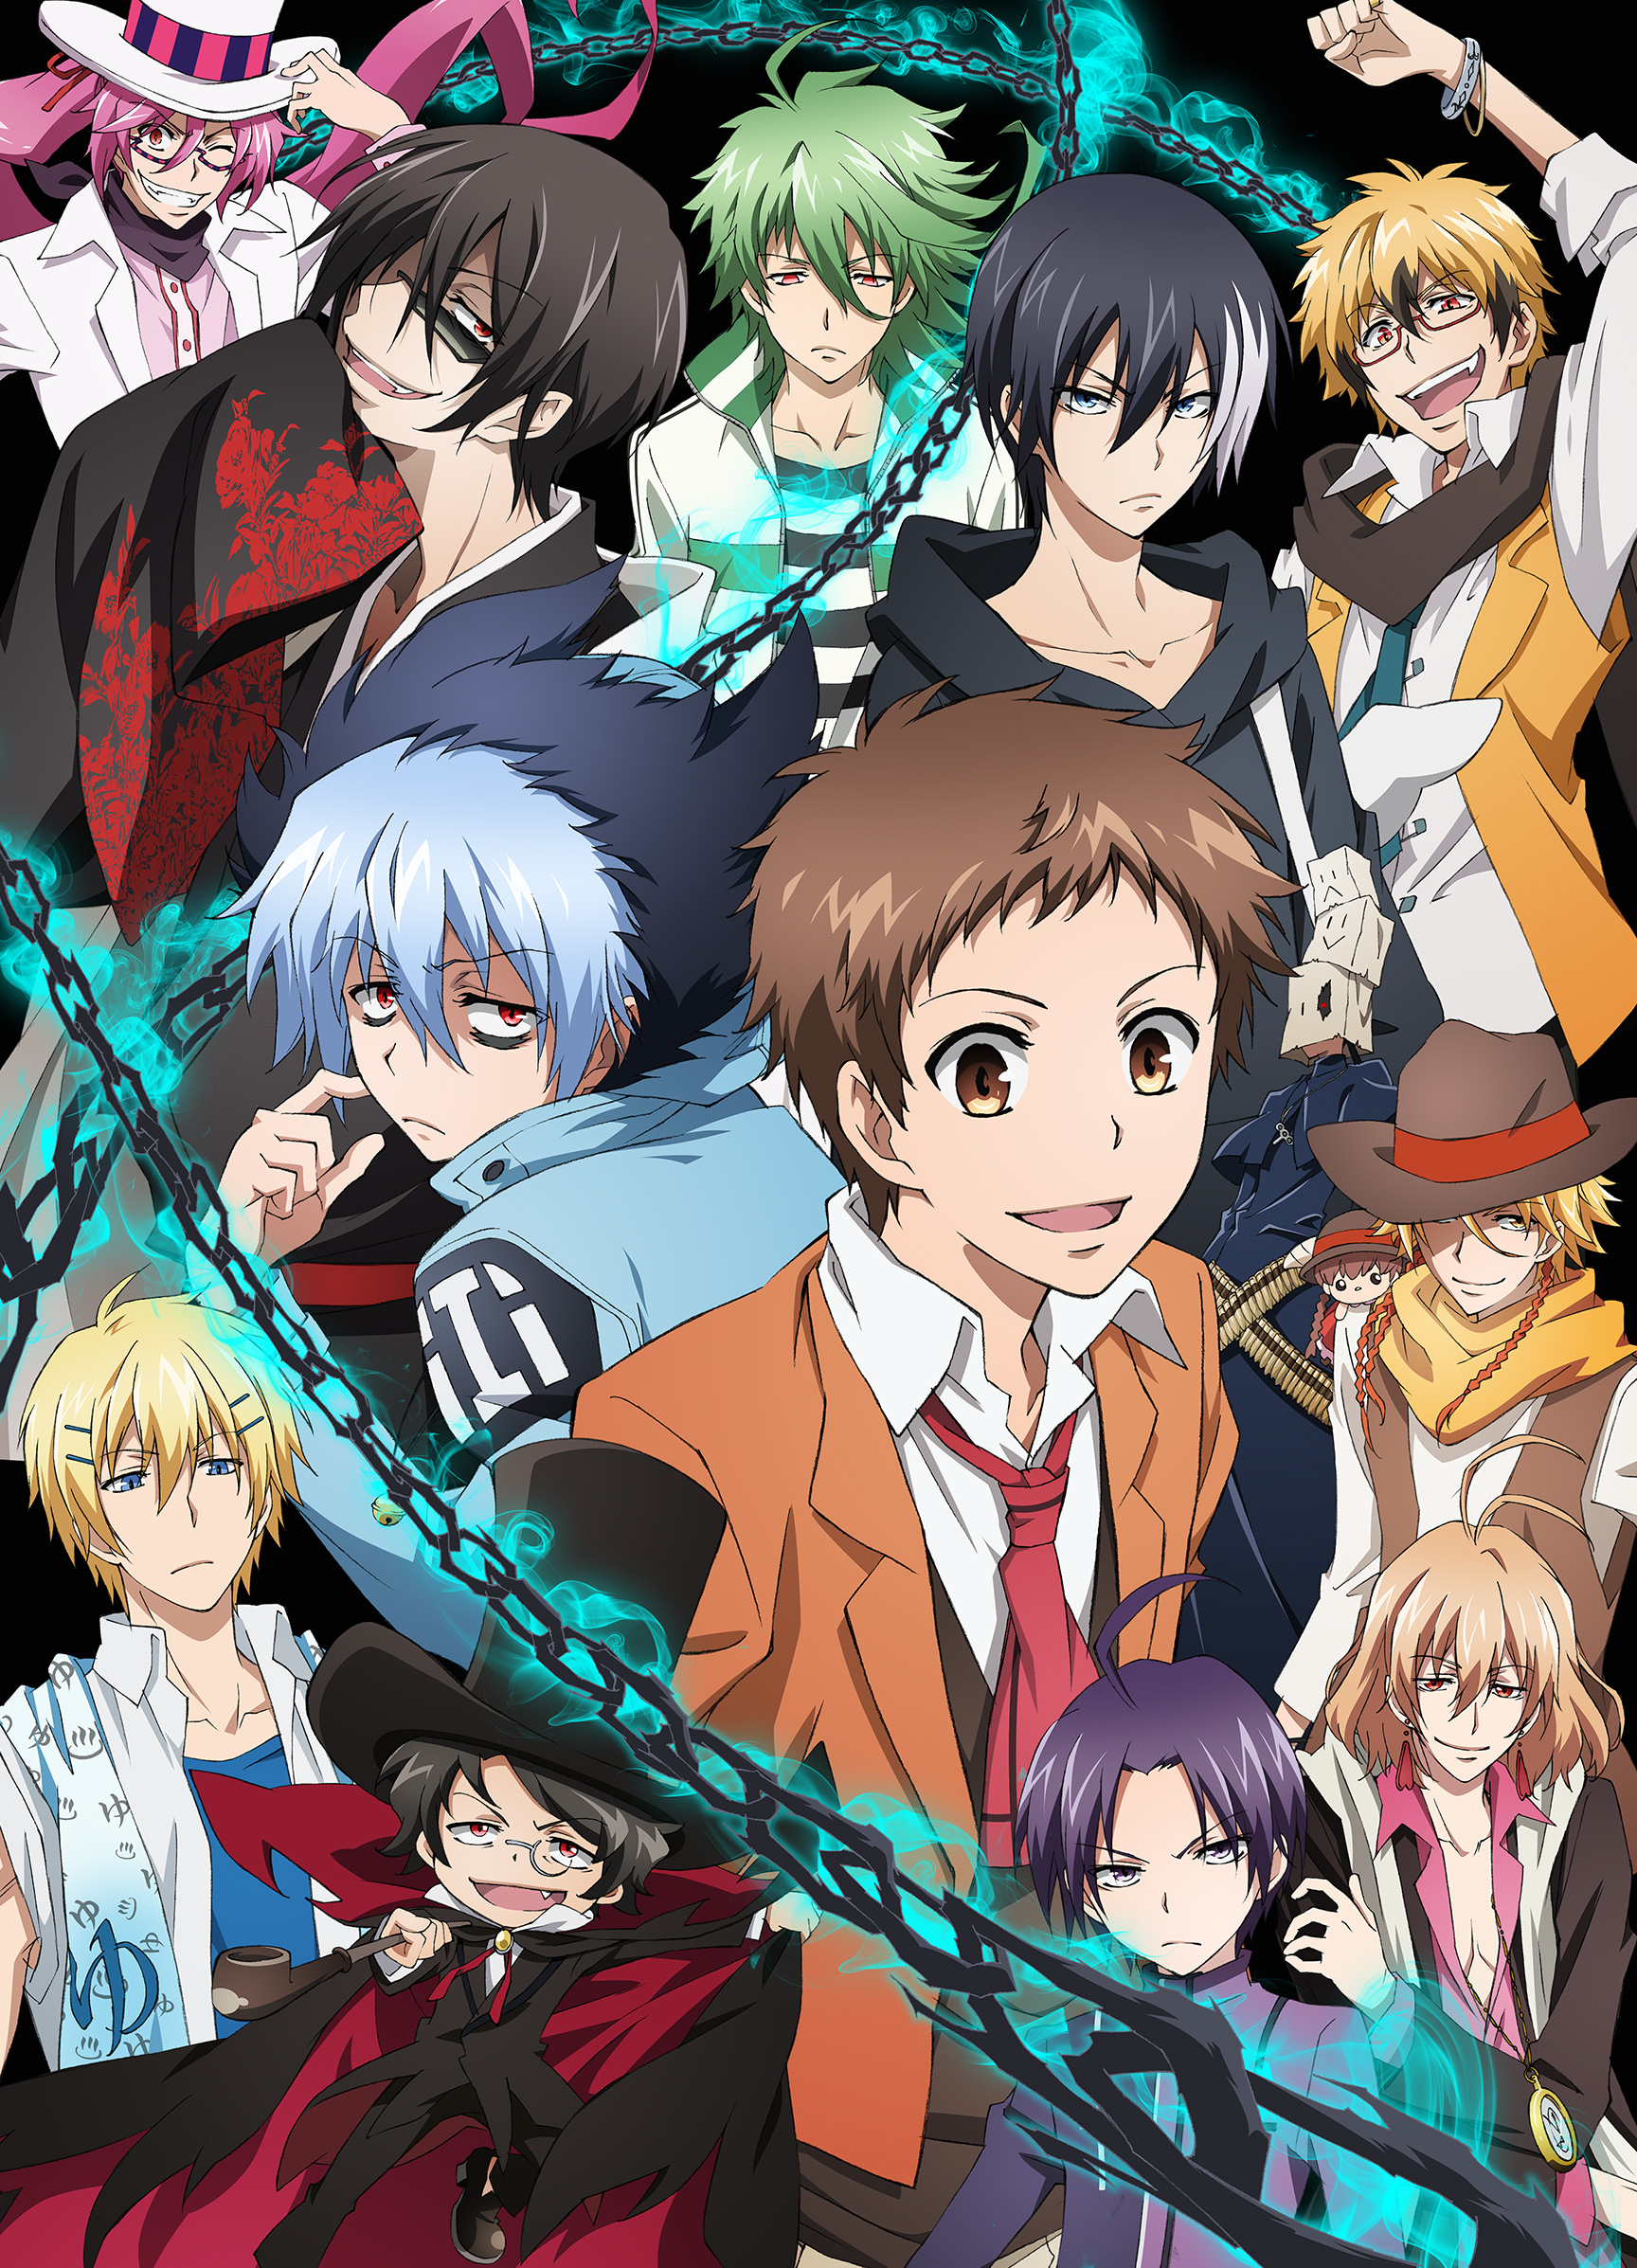 Watch Servamp Episodes Sub & Dub | Action/Adventure, Fantasy Anime